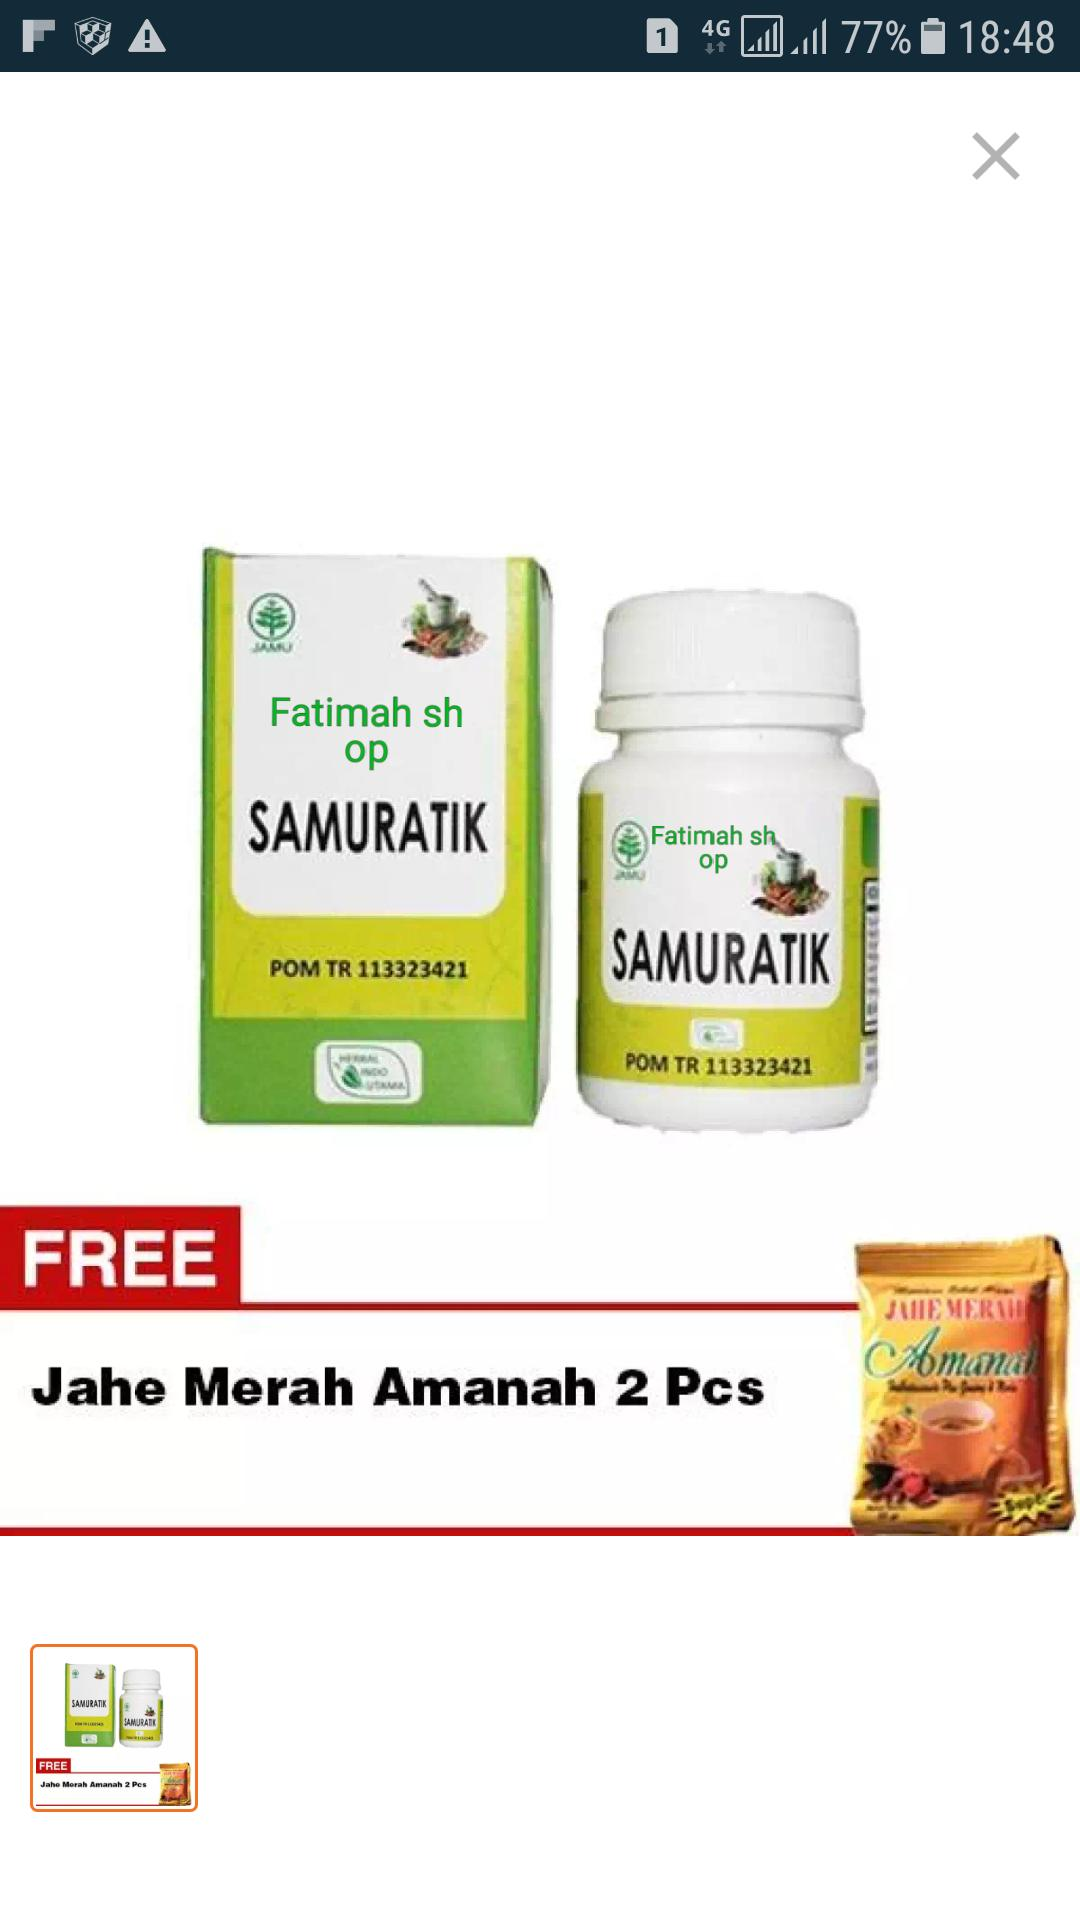 Lucky Eza Asmuratik Obat Asam Urat Rematik Isi 60 Kapsul Review Tcu Ten Source Herbal Hiu Samuratik